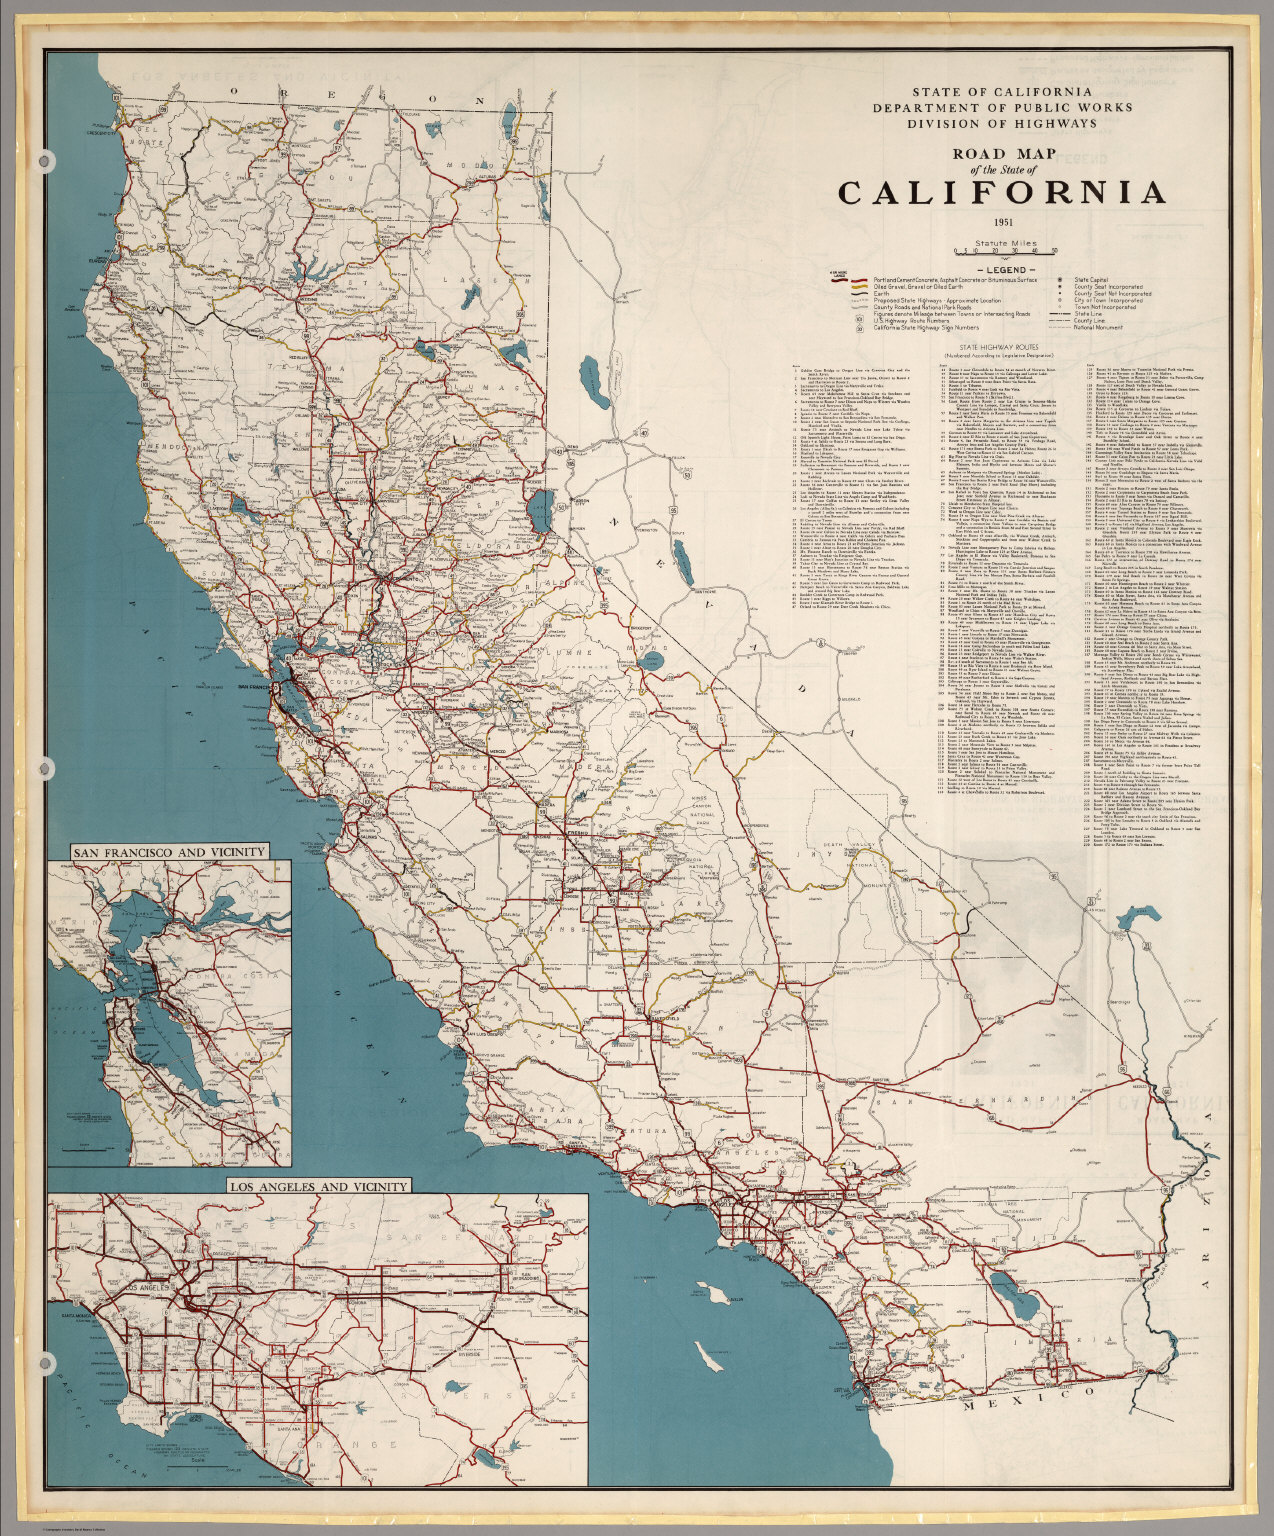 Road Map of the State of California, 1951.